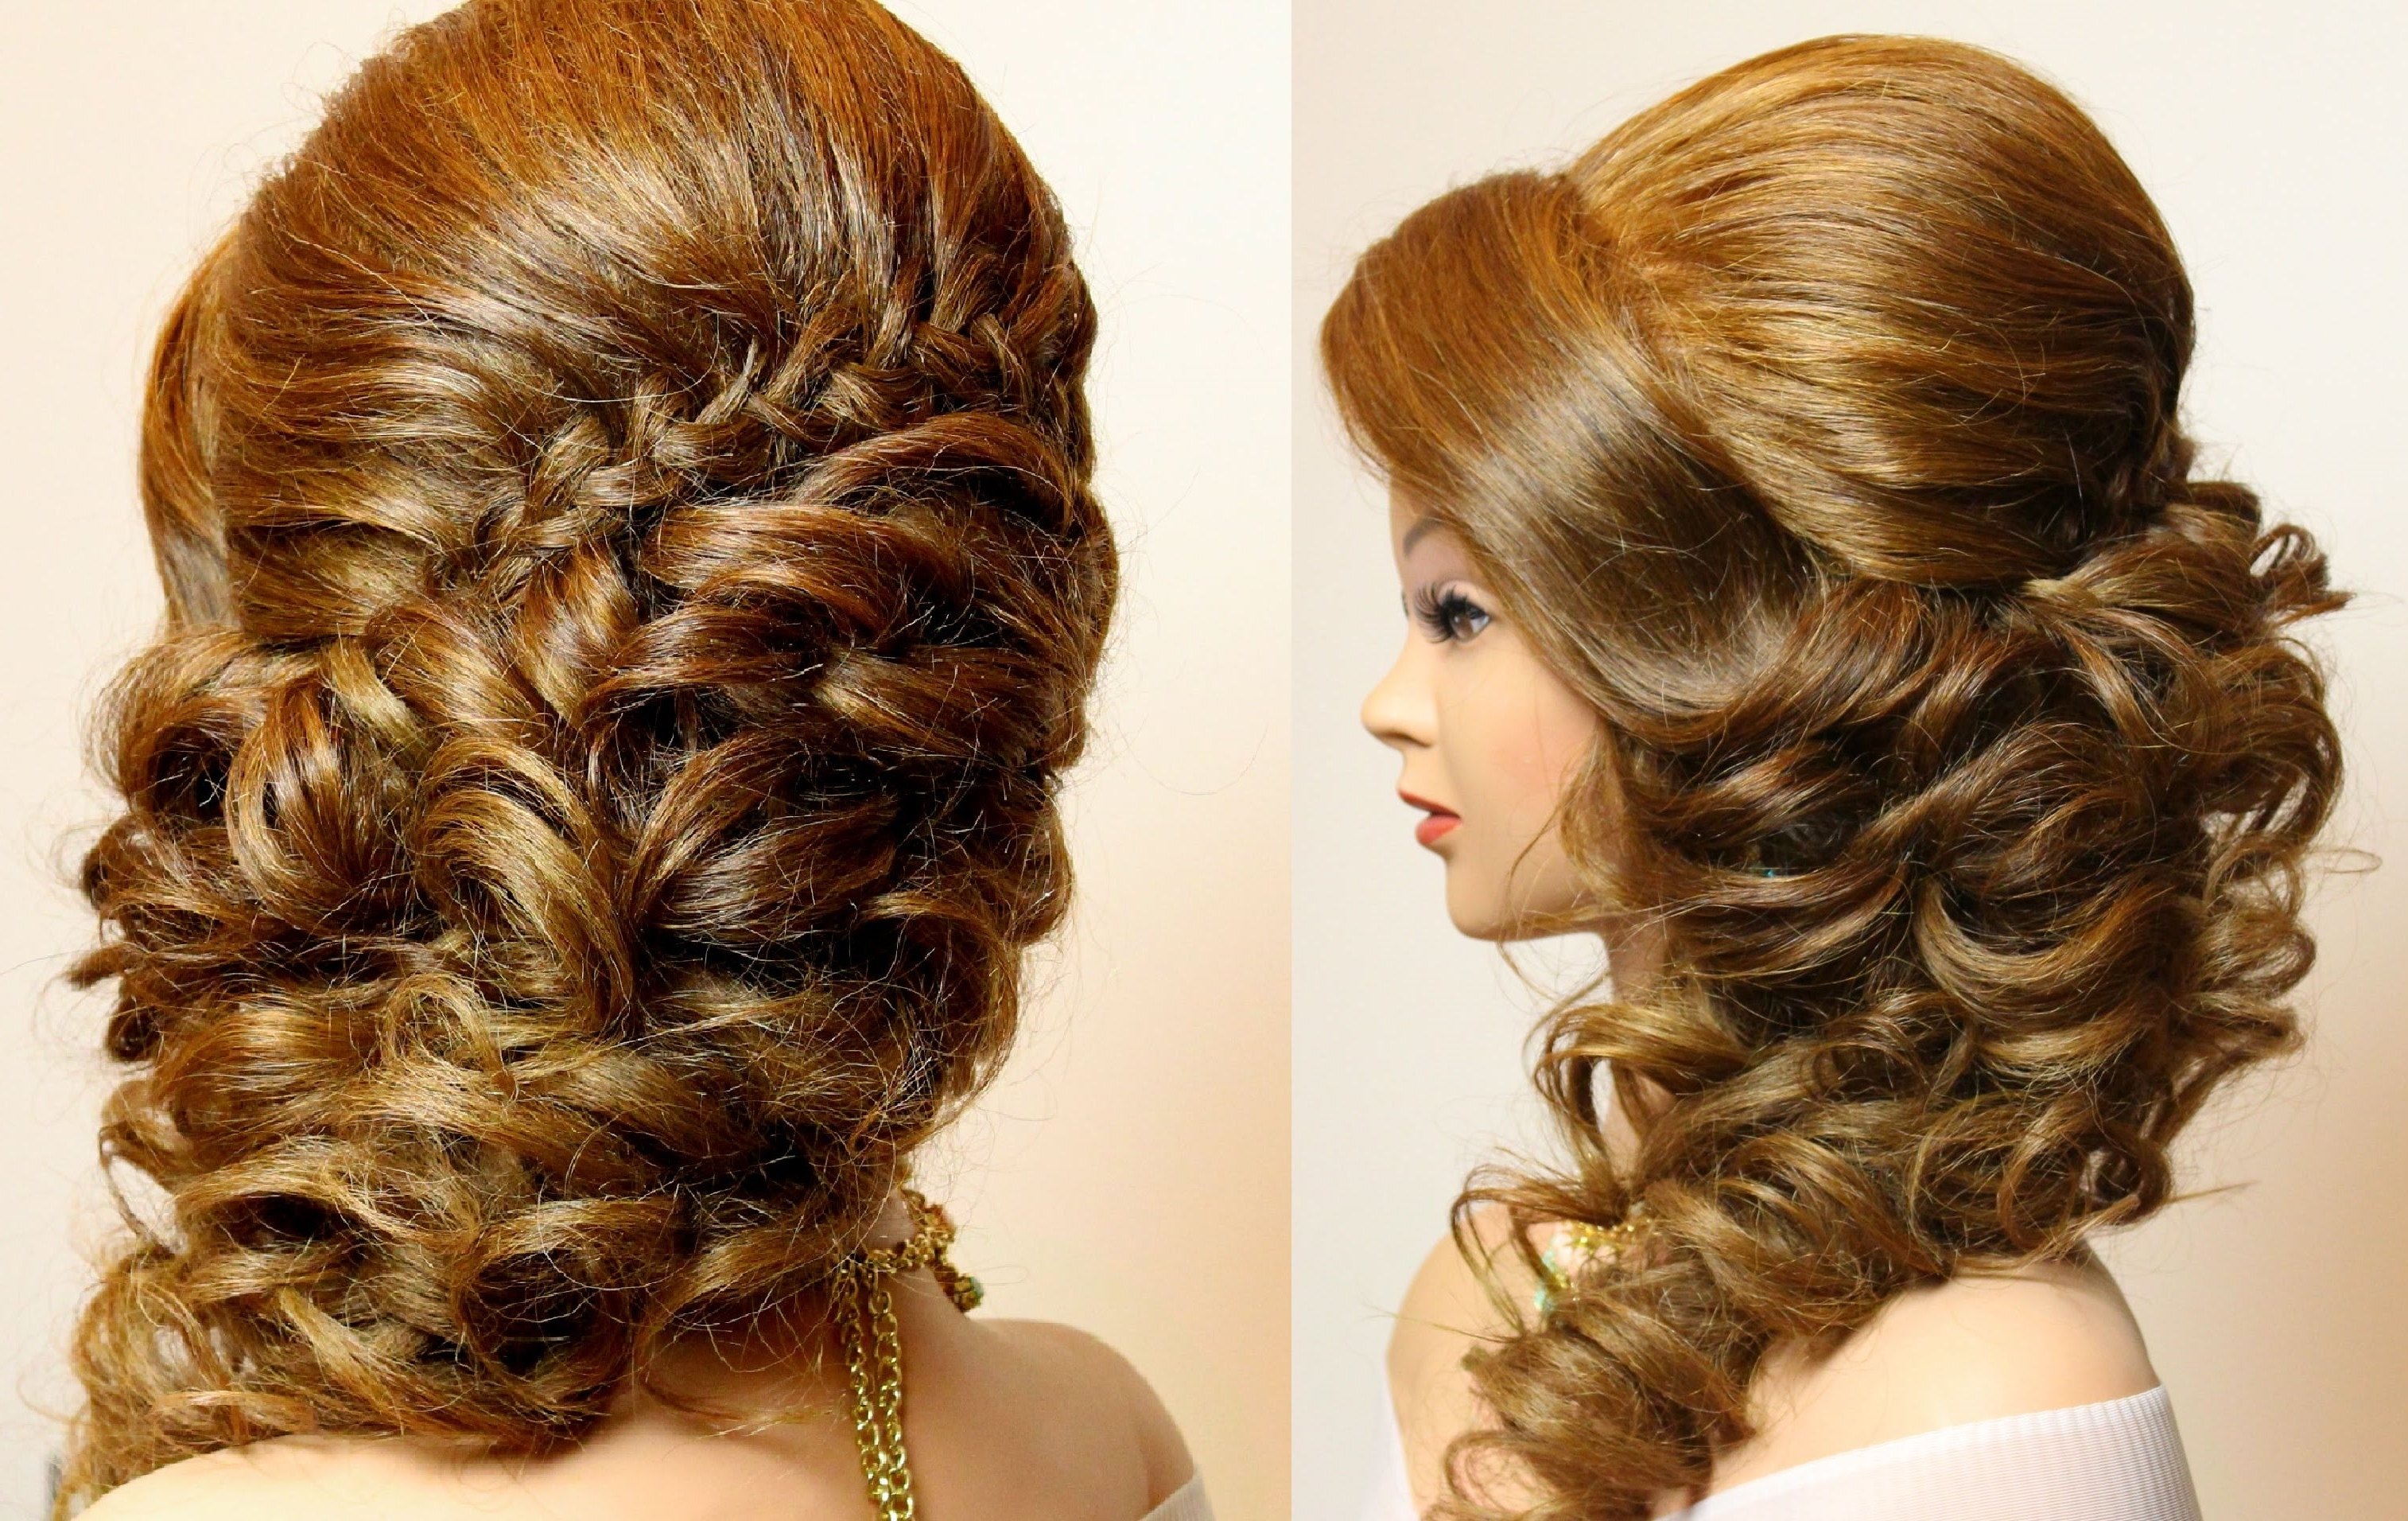 61 Braided Wedding Hairstyles: 2019 Popular Braided Hairstyles For Homecoming